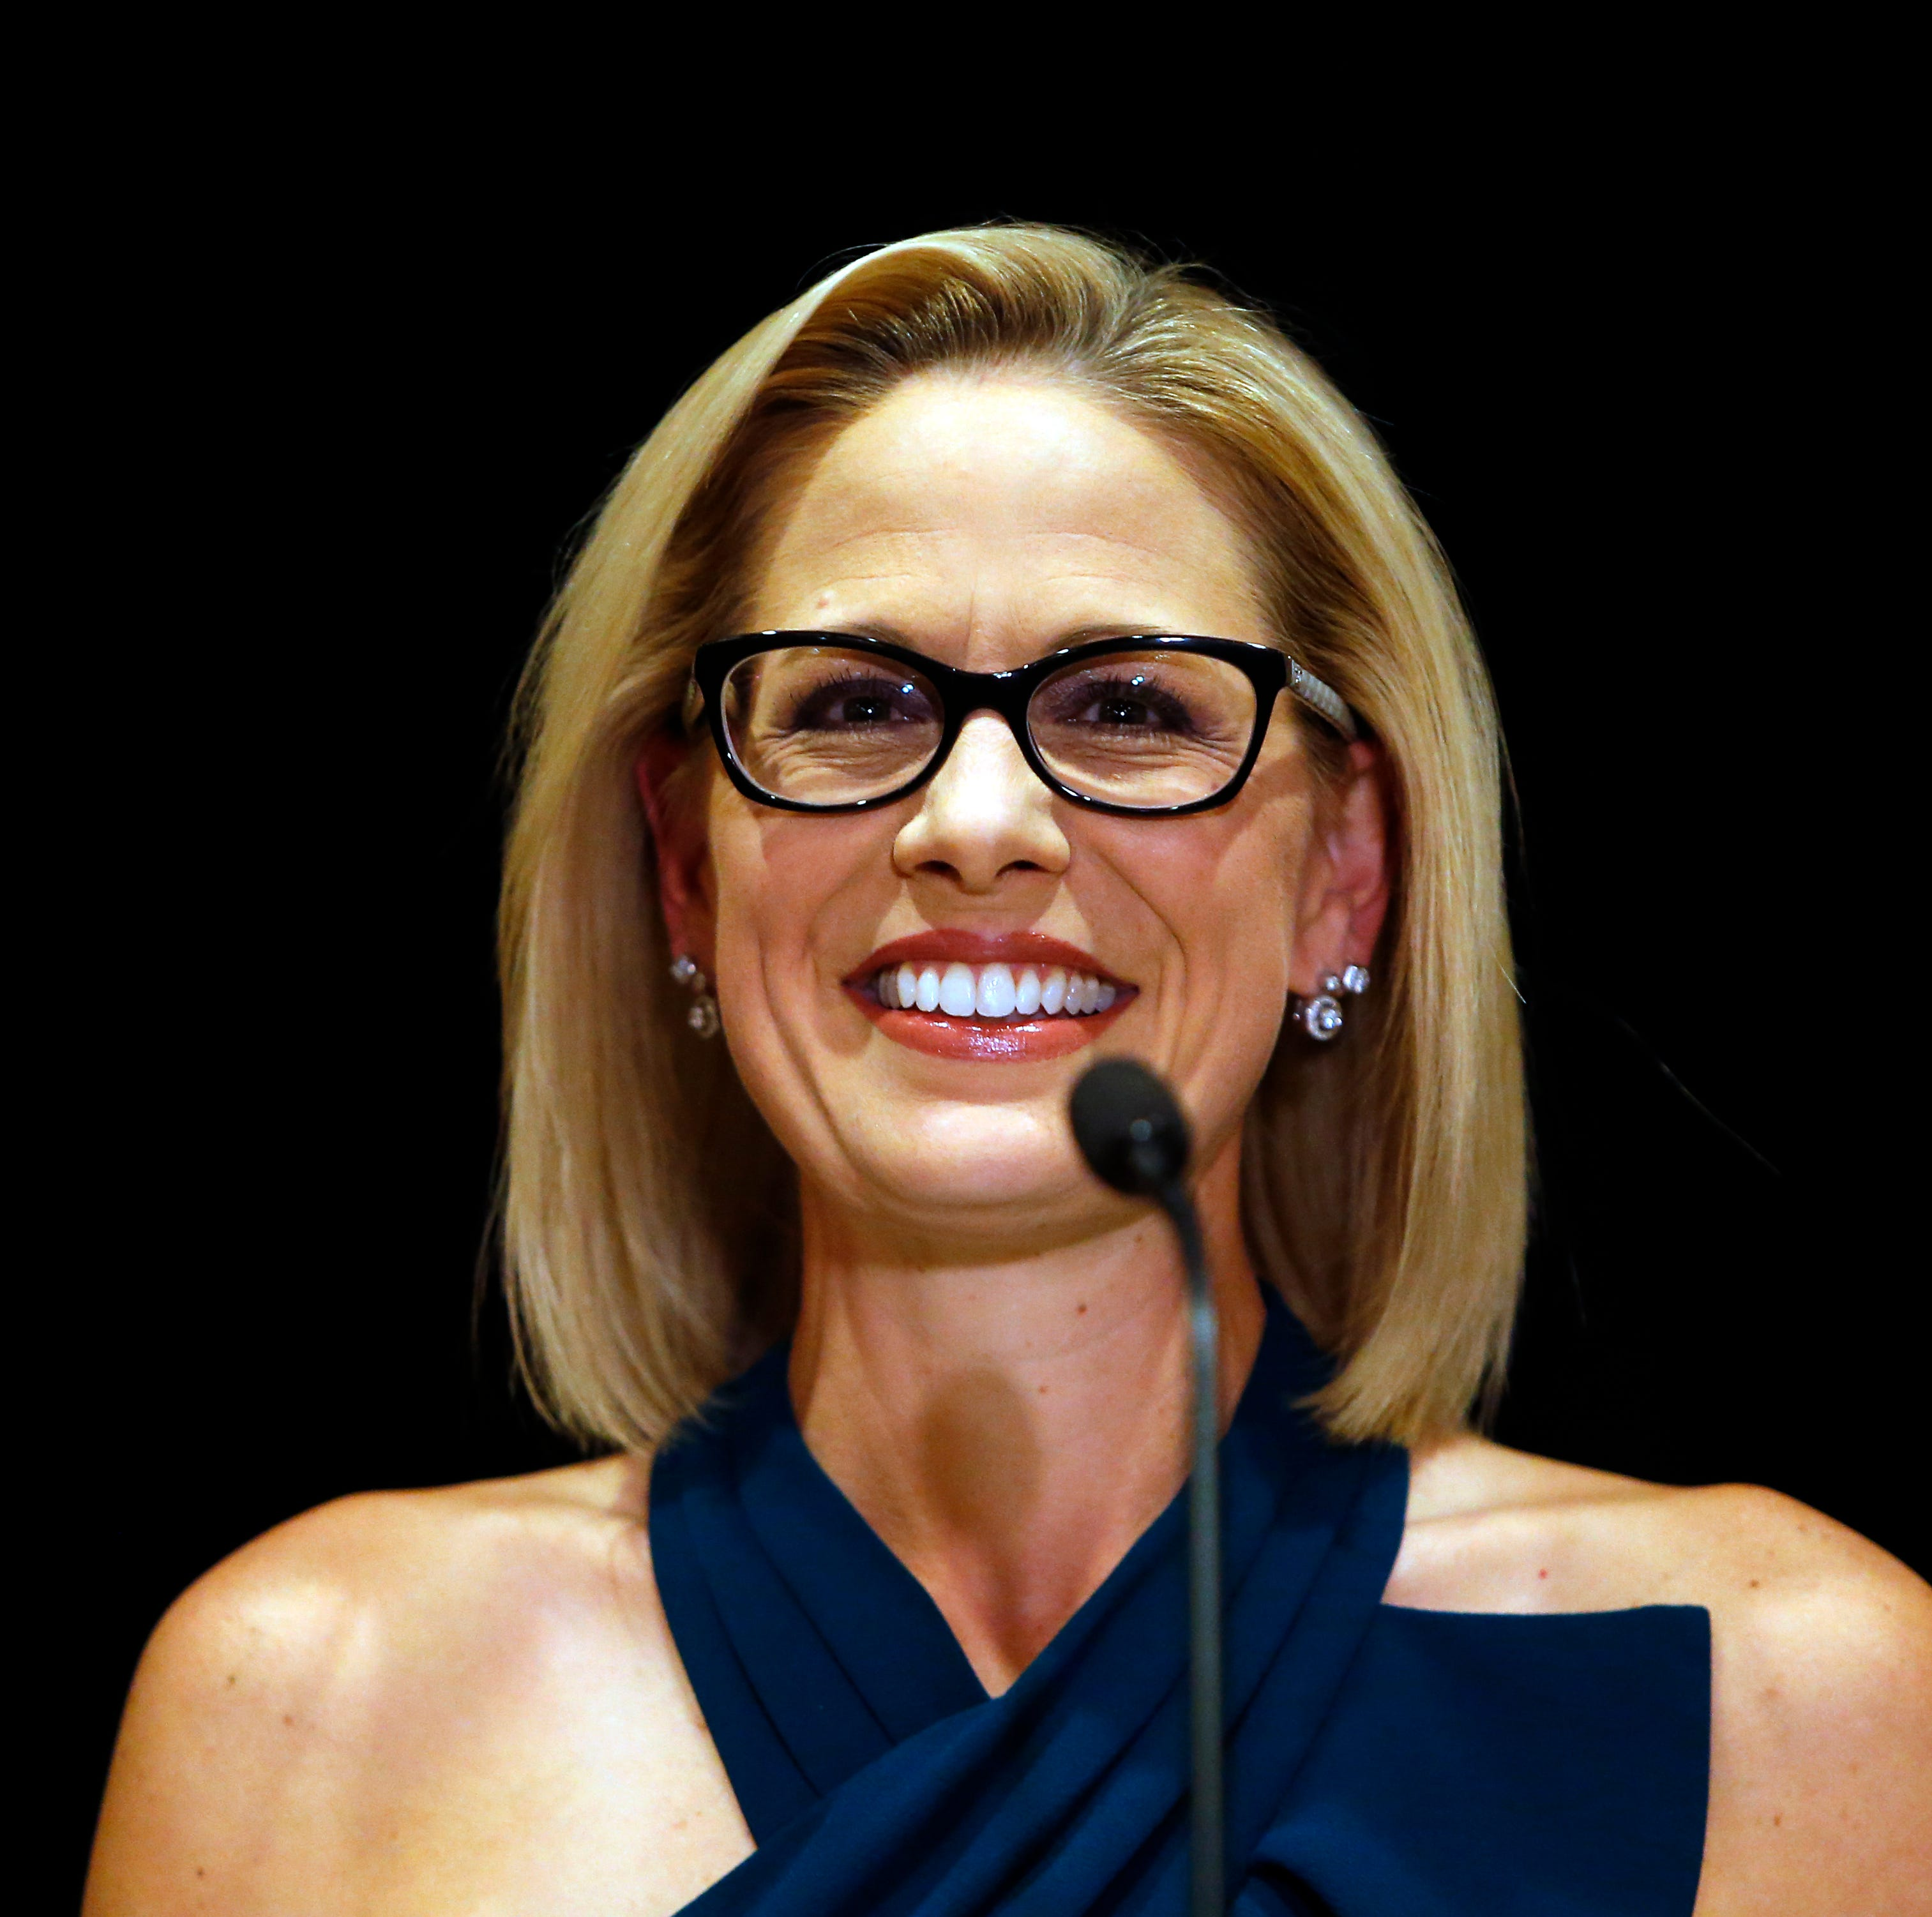 Democrat Kyrsten Sinema will be Arizona's senior U.S. senator, Gov. Doug Ducey says